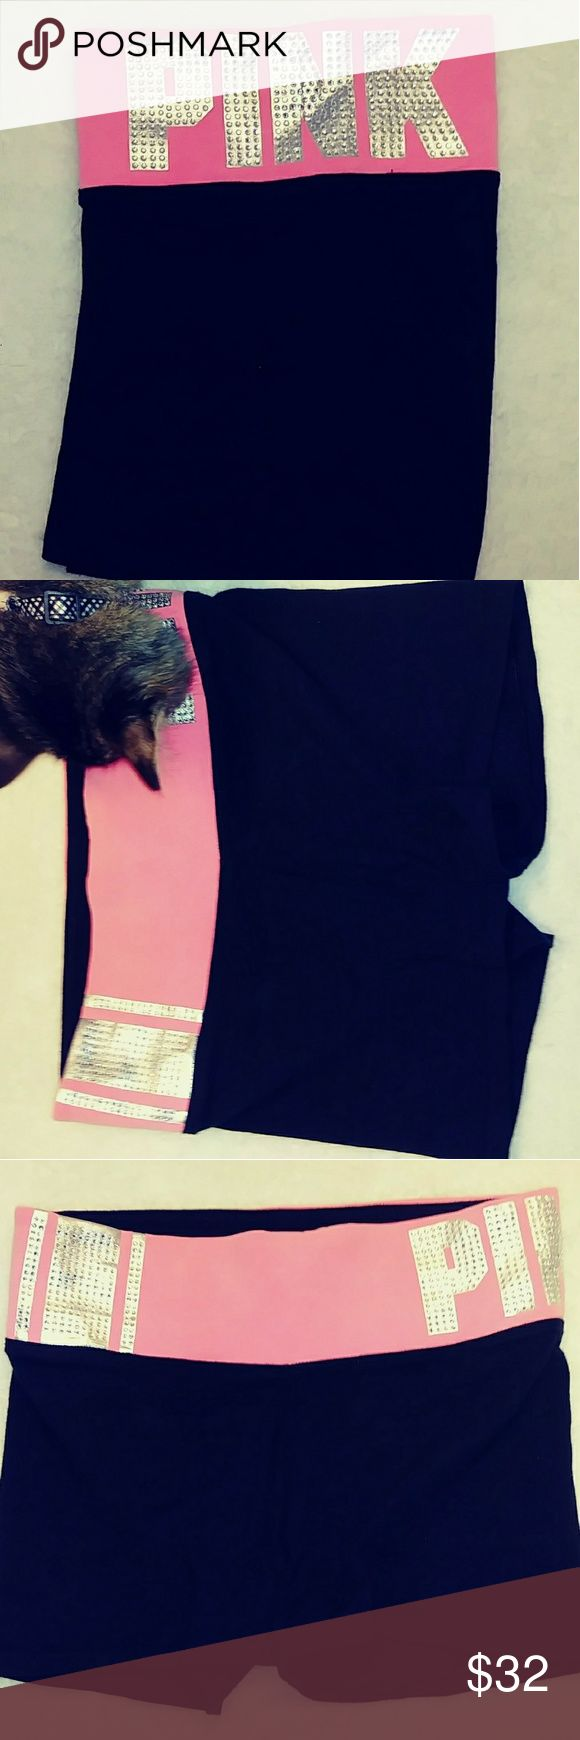 """Victoria's Secret """"Pink"""" Bling Yoga Shorts BNWOT  Victoria's Secret Pink Bling Yoga Shorts.  Black V.S. Pink Yoga Shorts With Hot Pink Band. Right Side Has One wide Rhinestone Stripe With Two Thin Rhinestone Stripes One On Each Side.  Rhinestone PINK Imprint on Left Hip with inner Pocket As Well... PINK Shorts"""